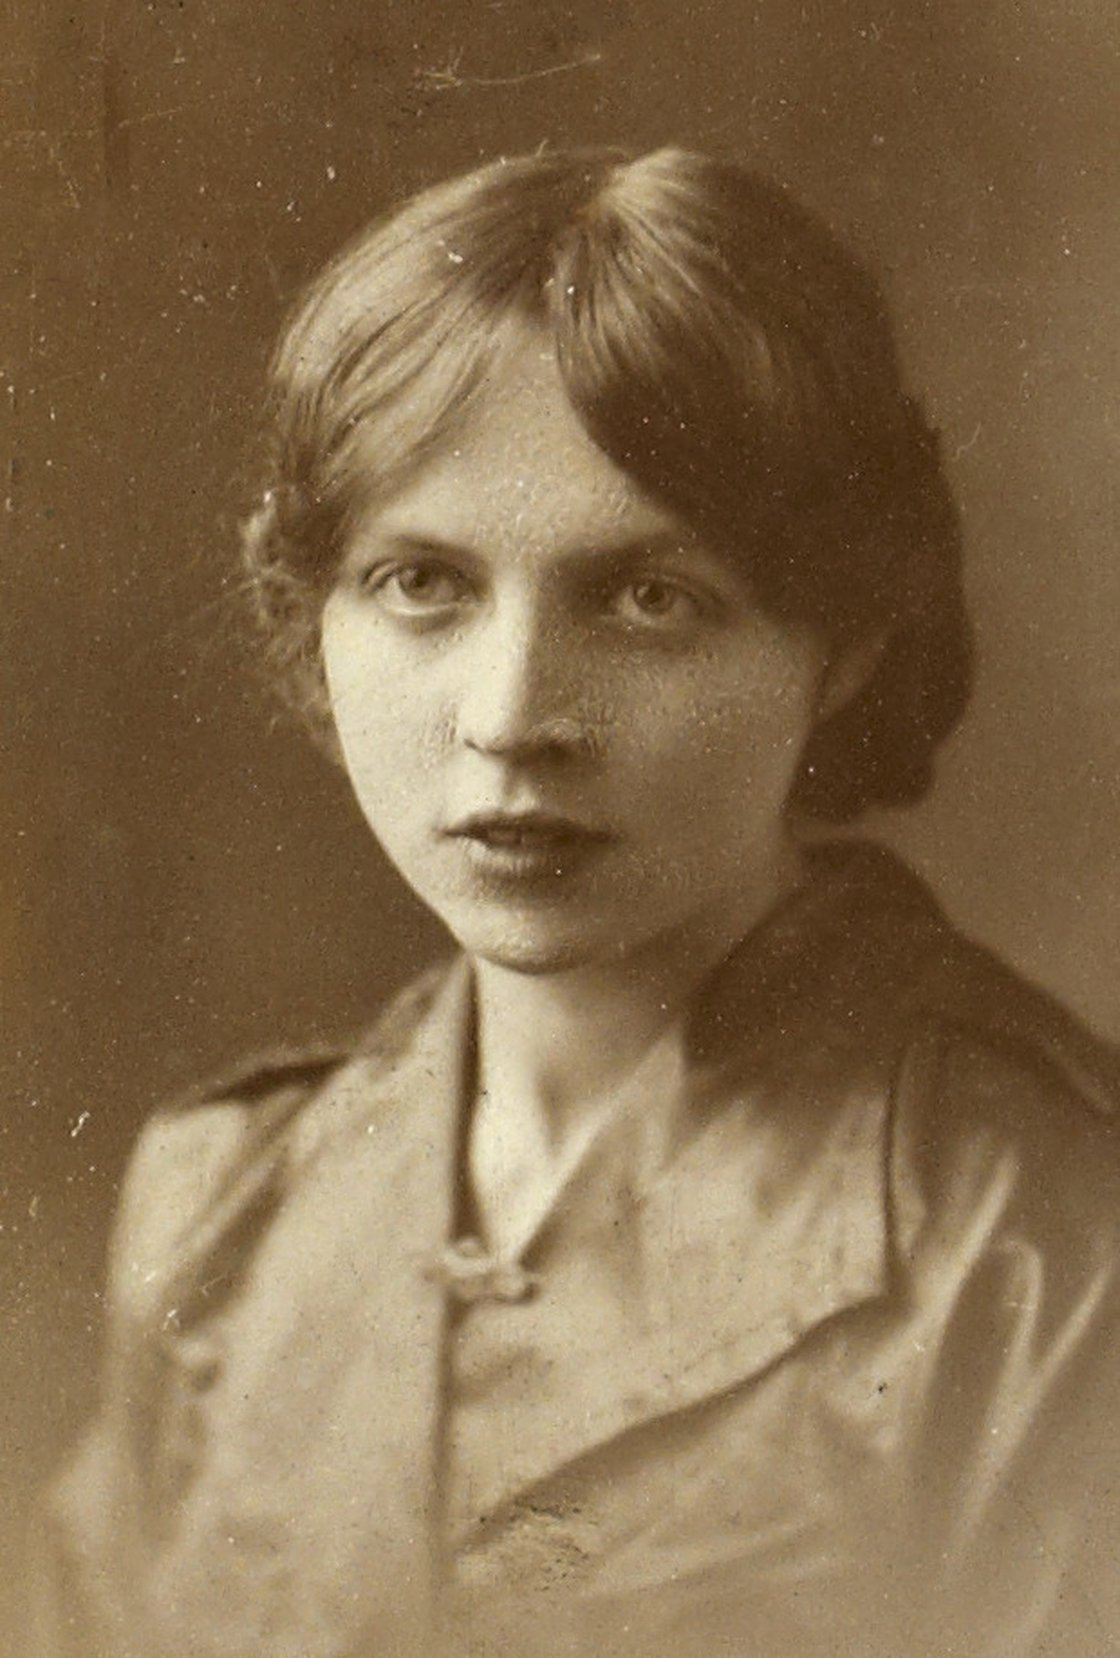 Image - Unknown Cumann na mBan member, Photo: © National Library of Ireland